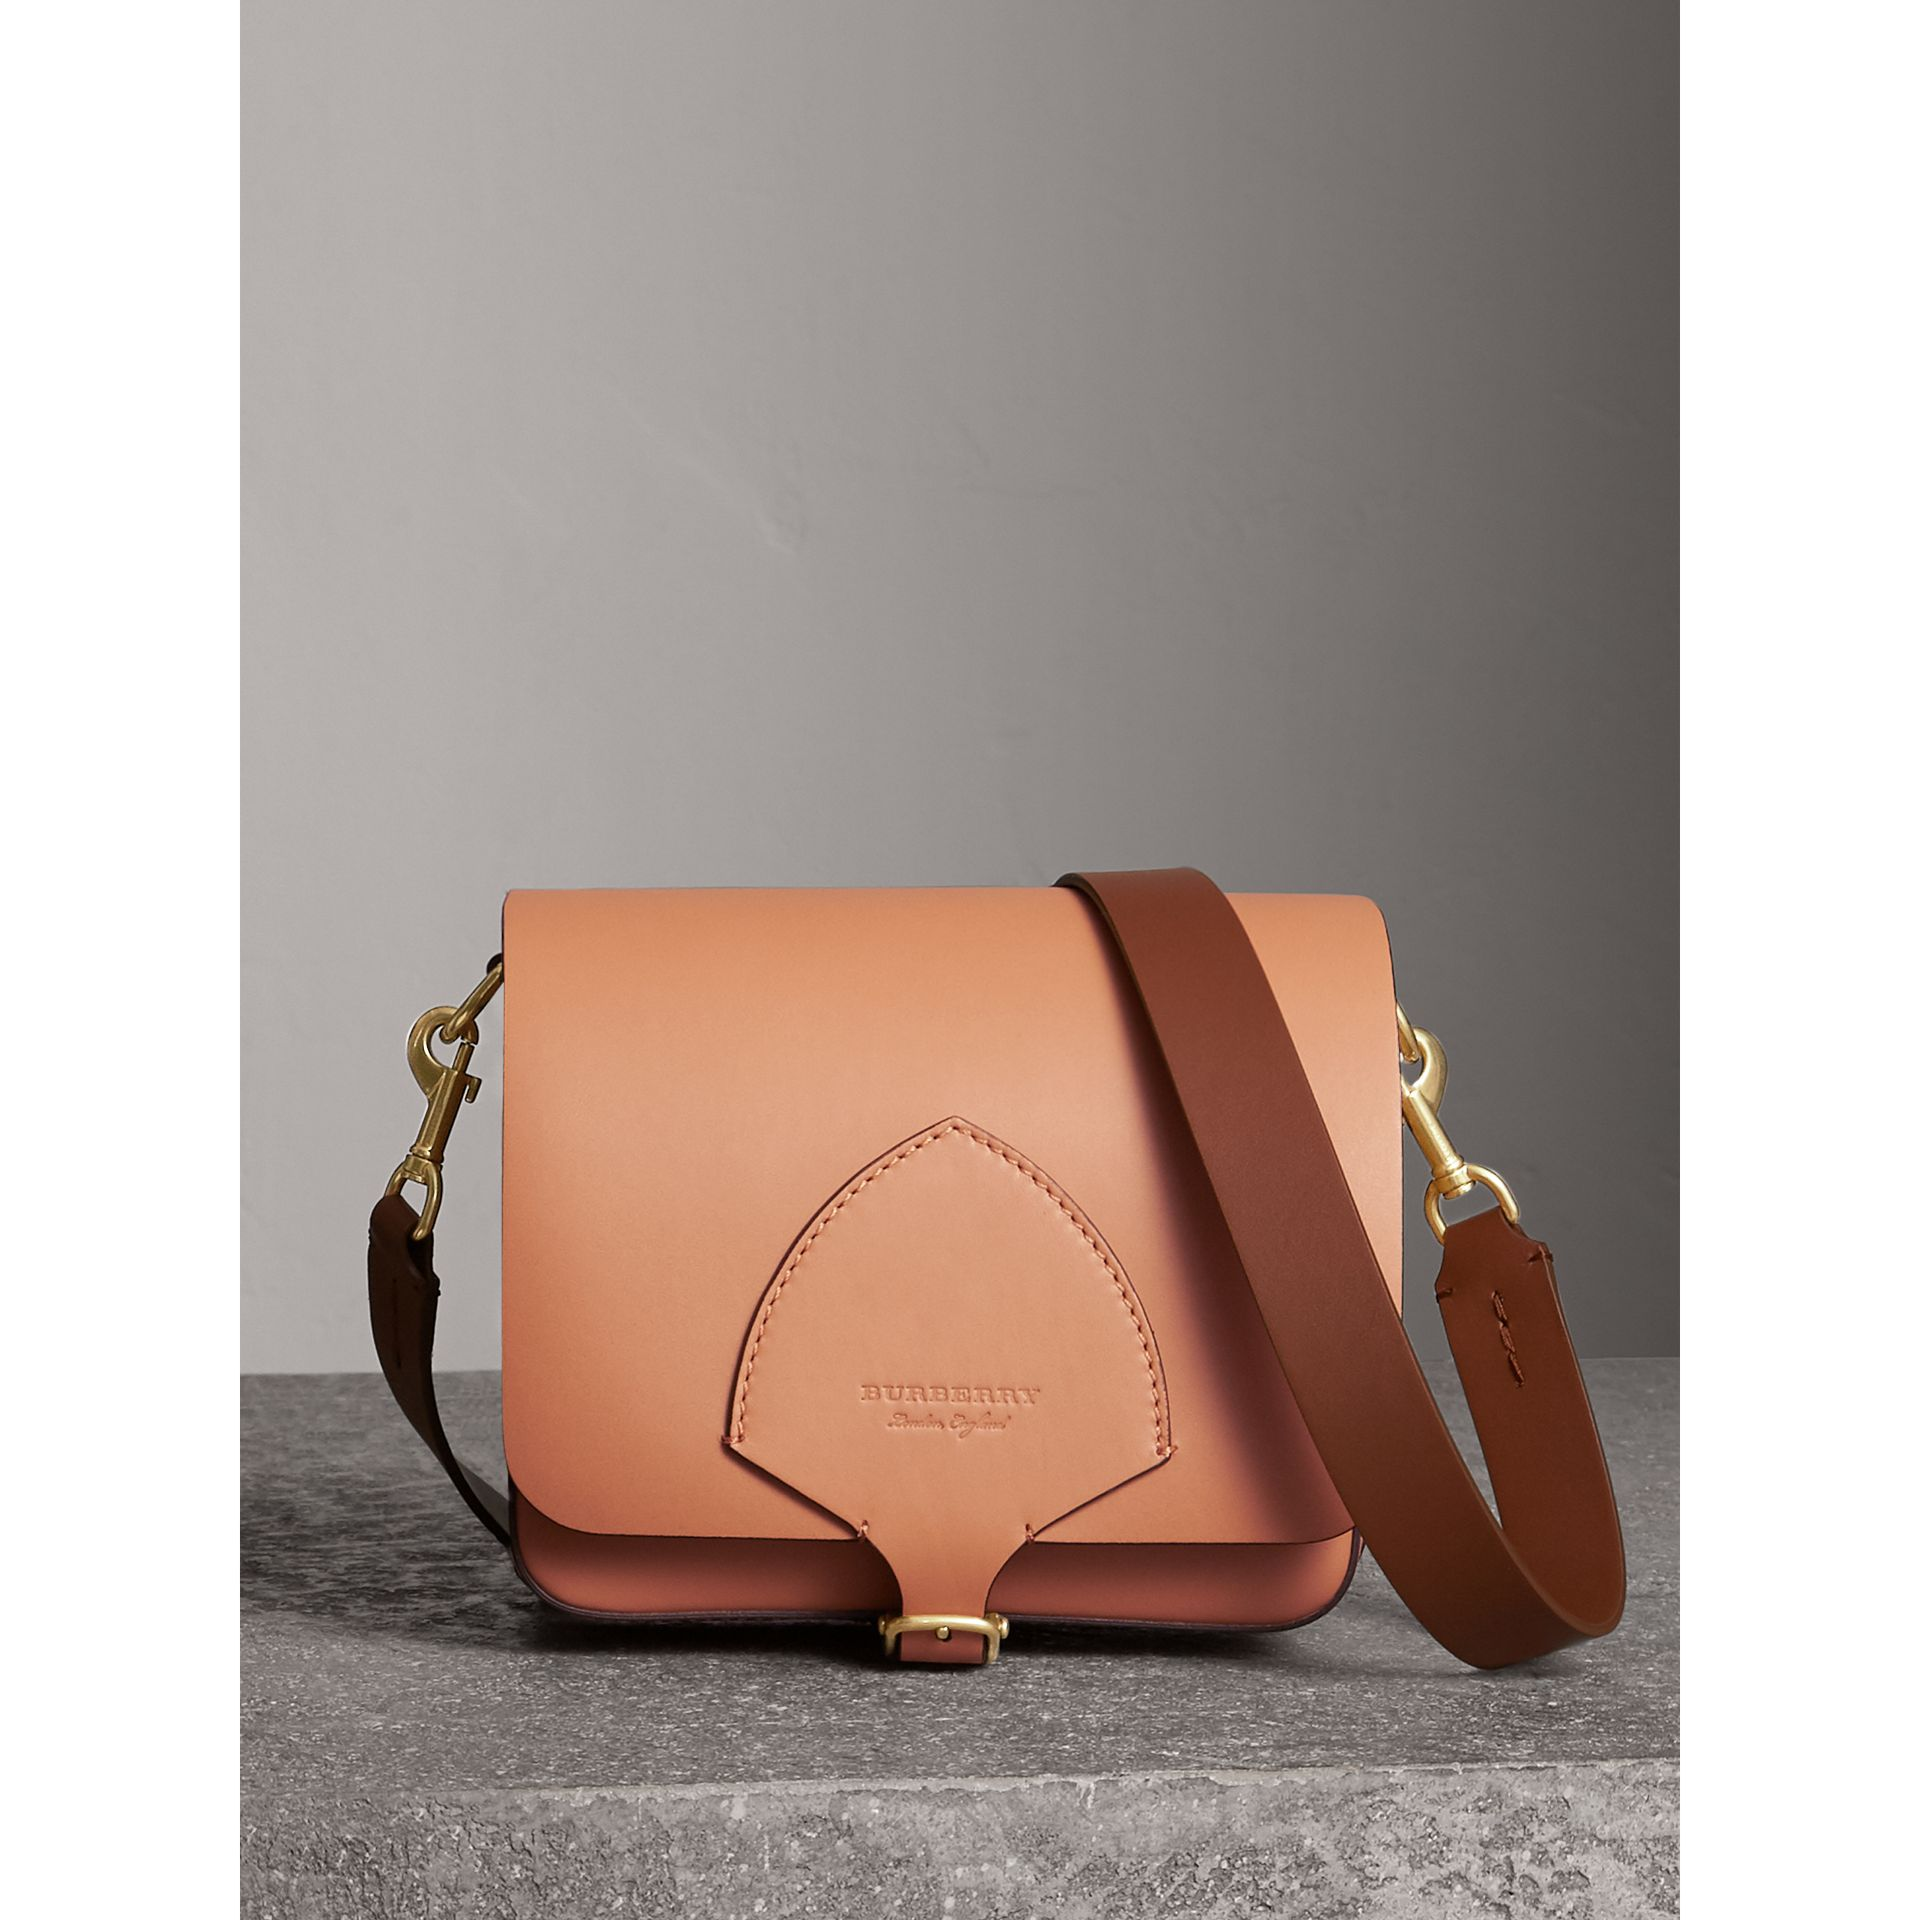 Sac The Satchel carré en cuir (Camel) - Femme | Burberry Canada - photo de la galerie 0